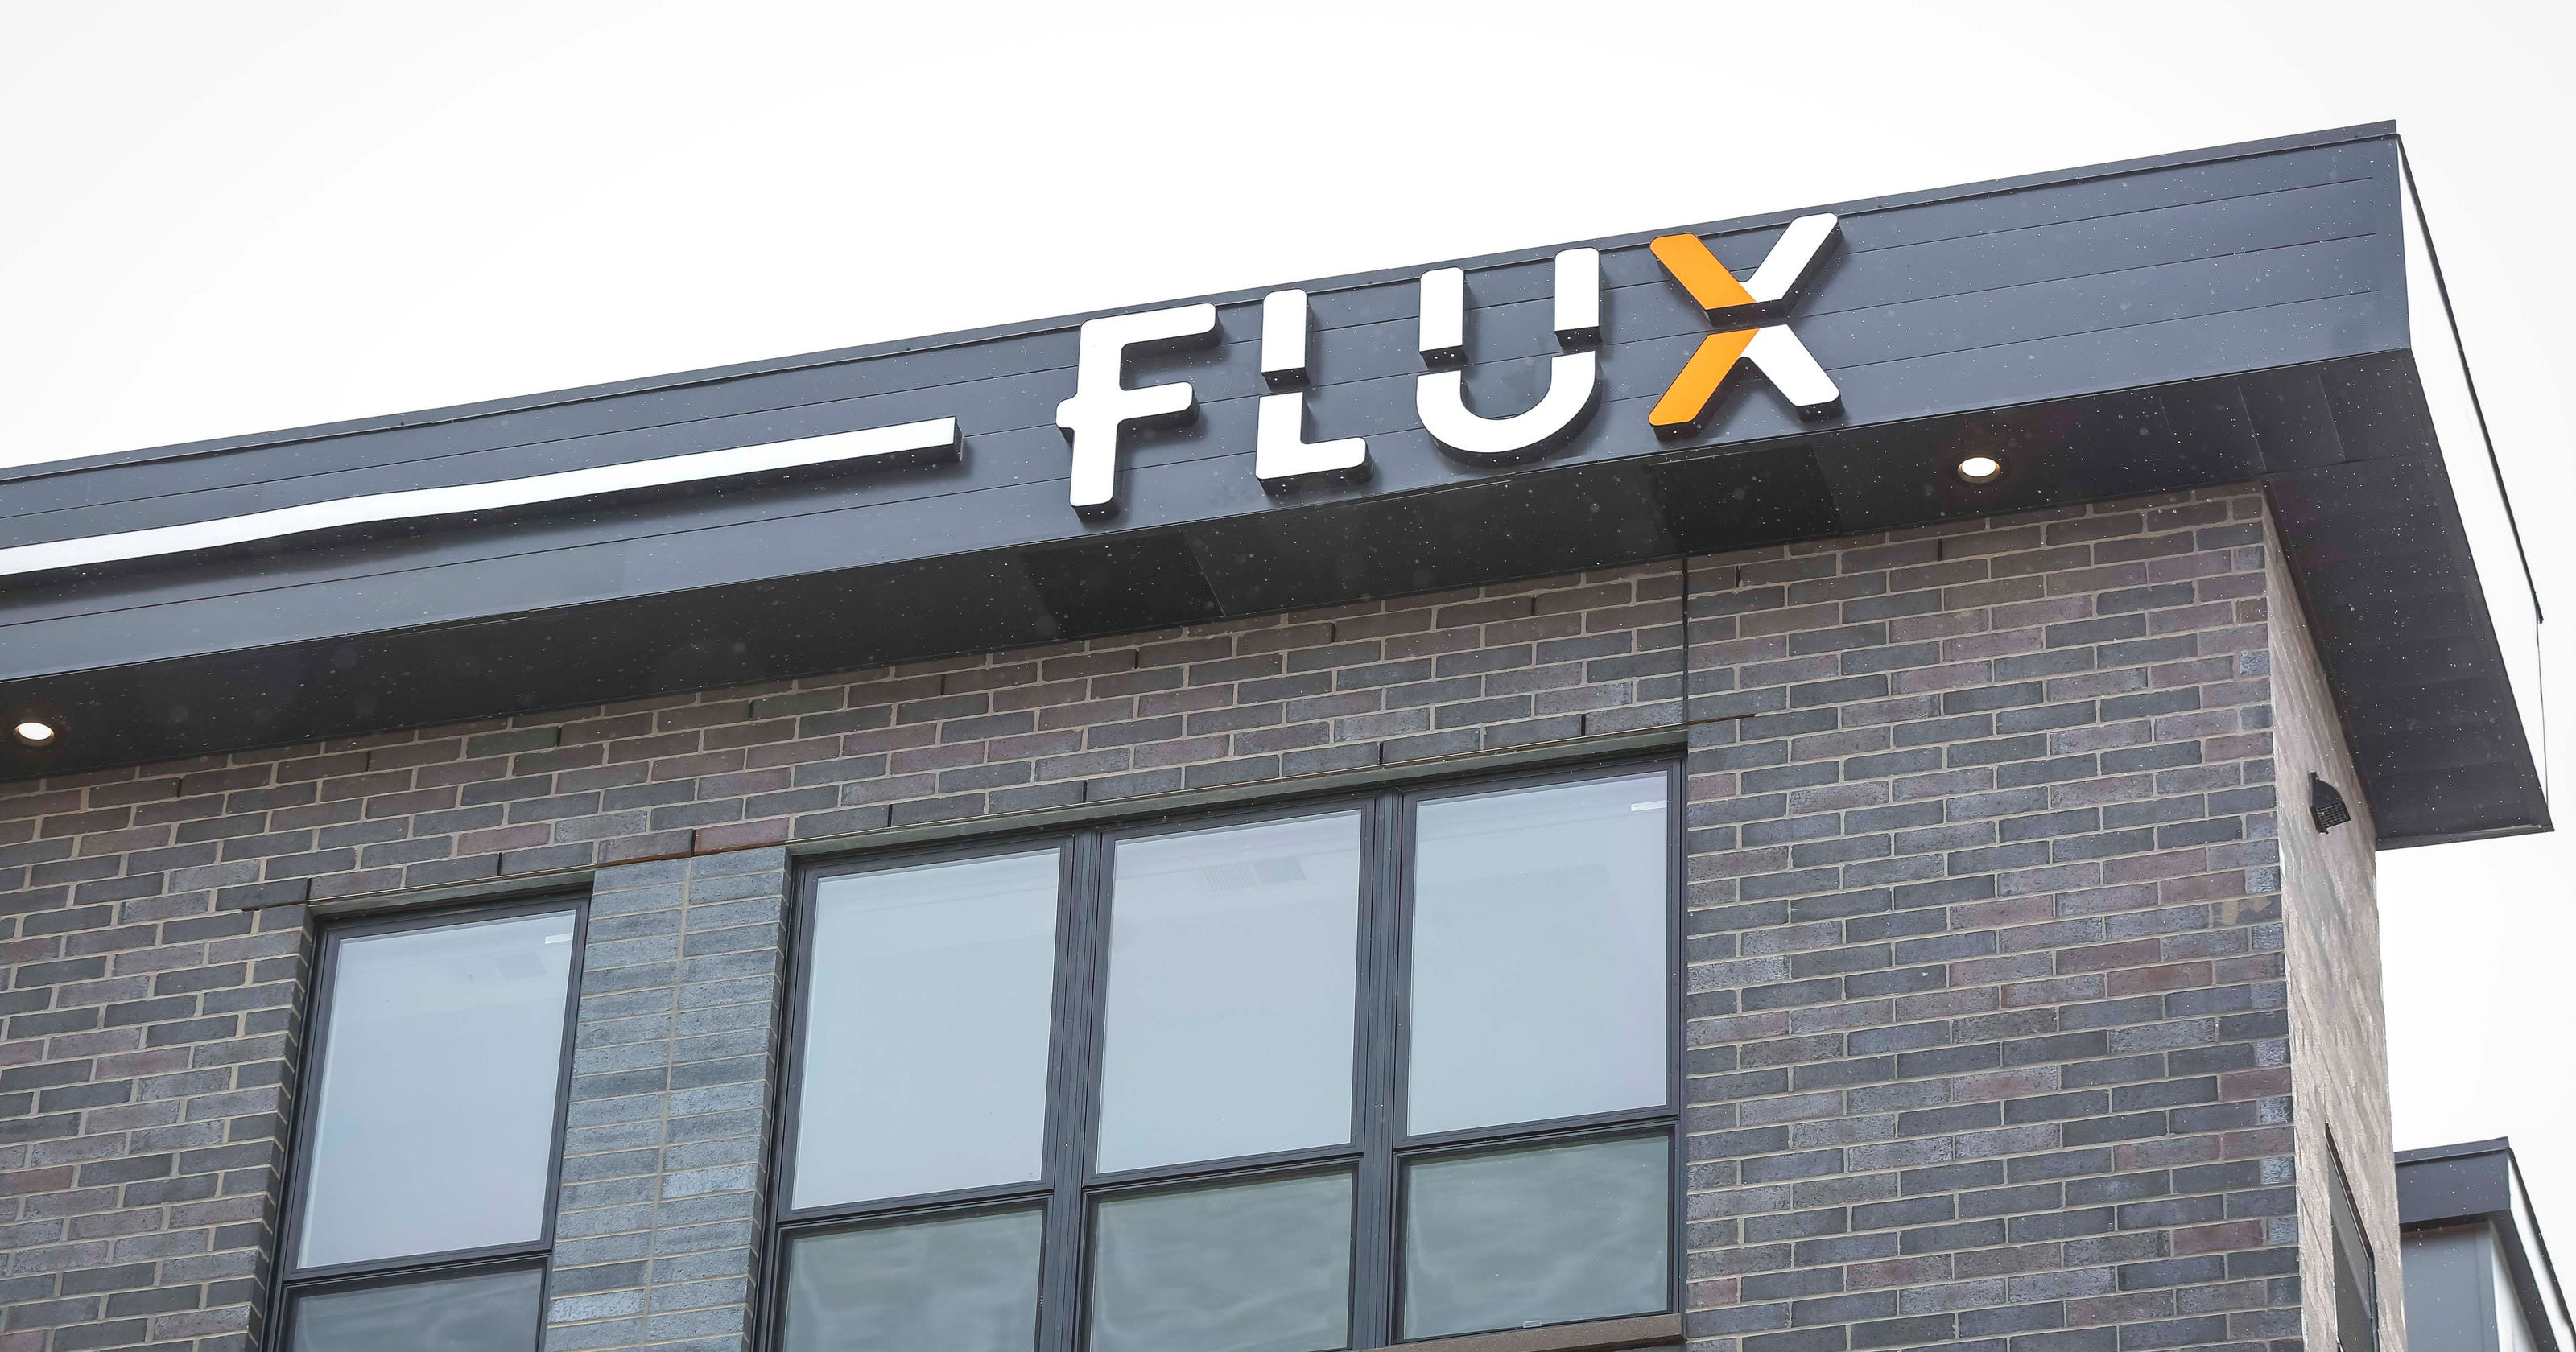 Downtown Des Moines Rentable Office Space Opening In Flux Apartments